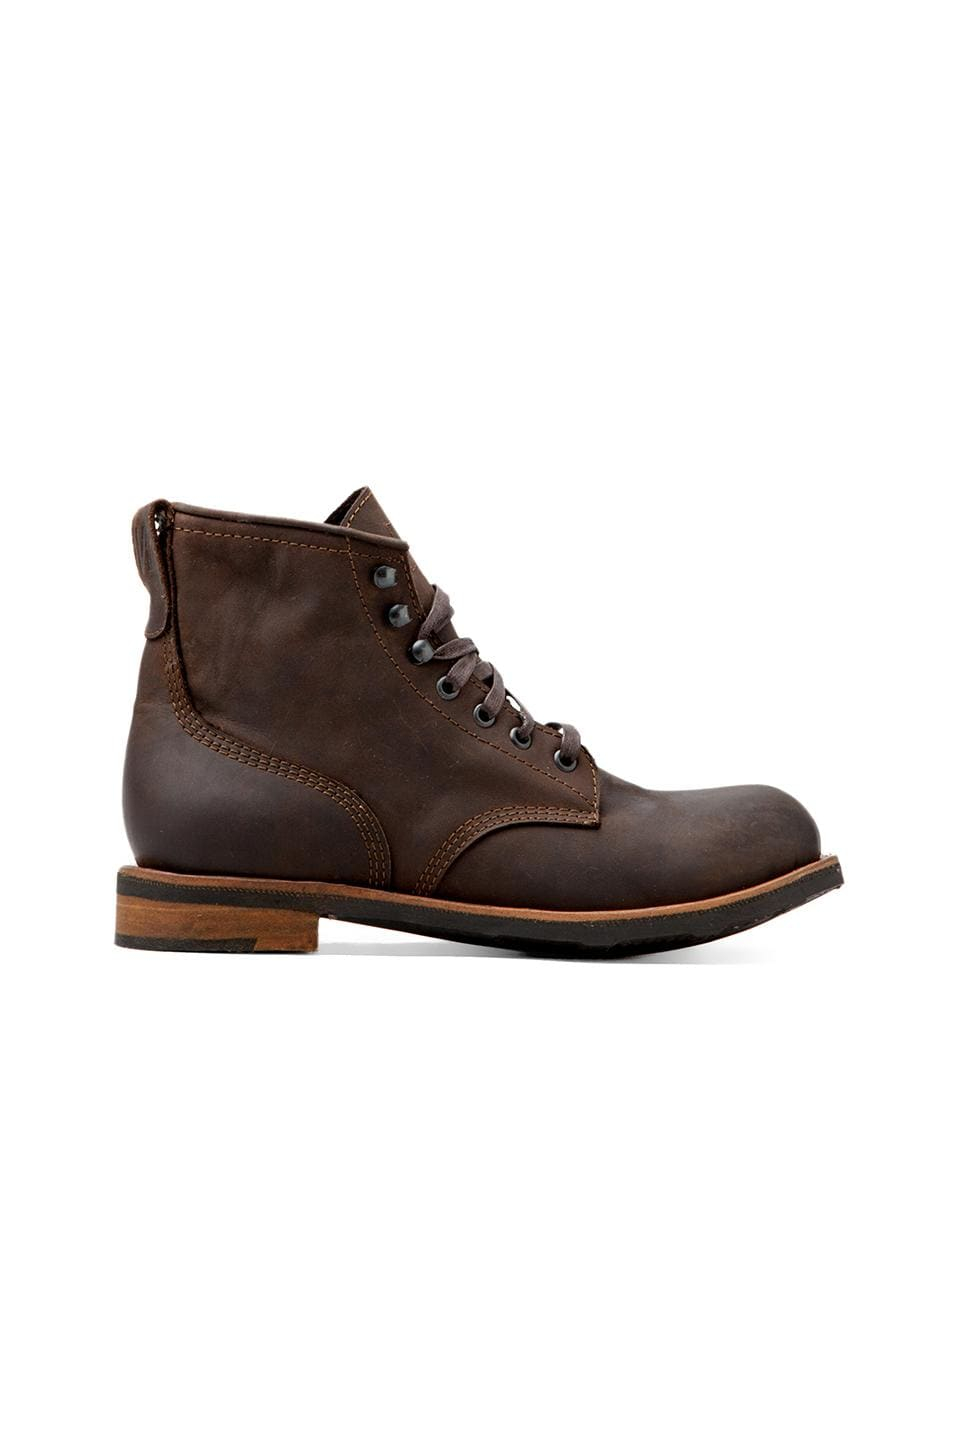 COMUNE Reed Classic Utility Boot in Brown